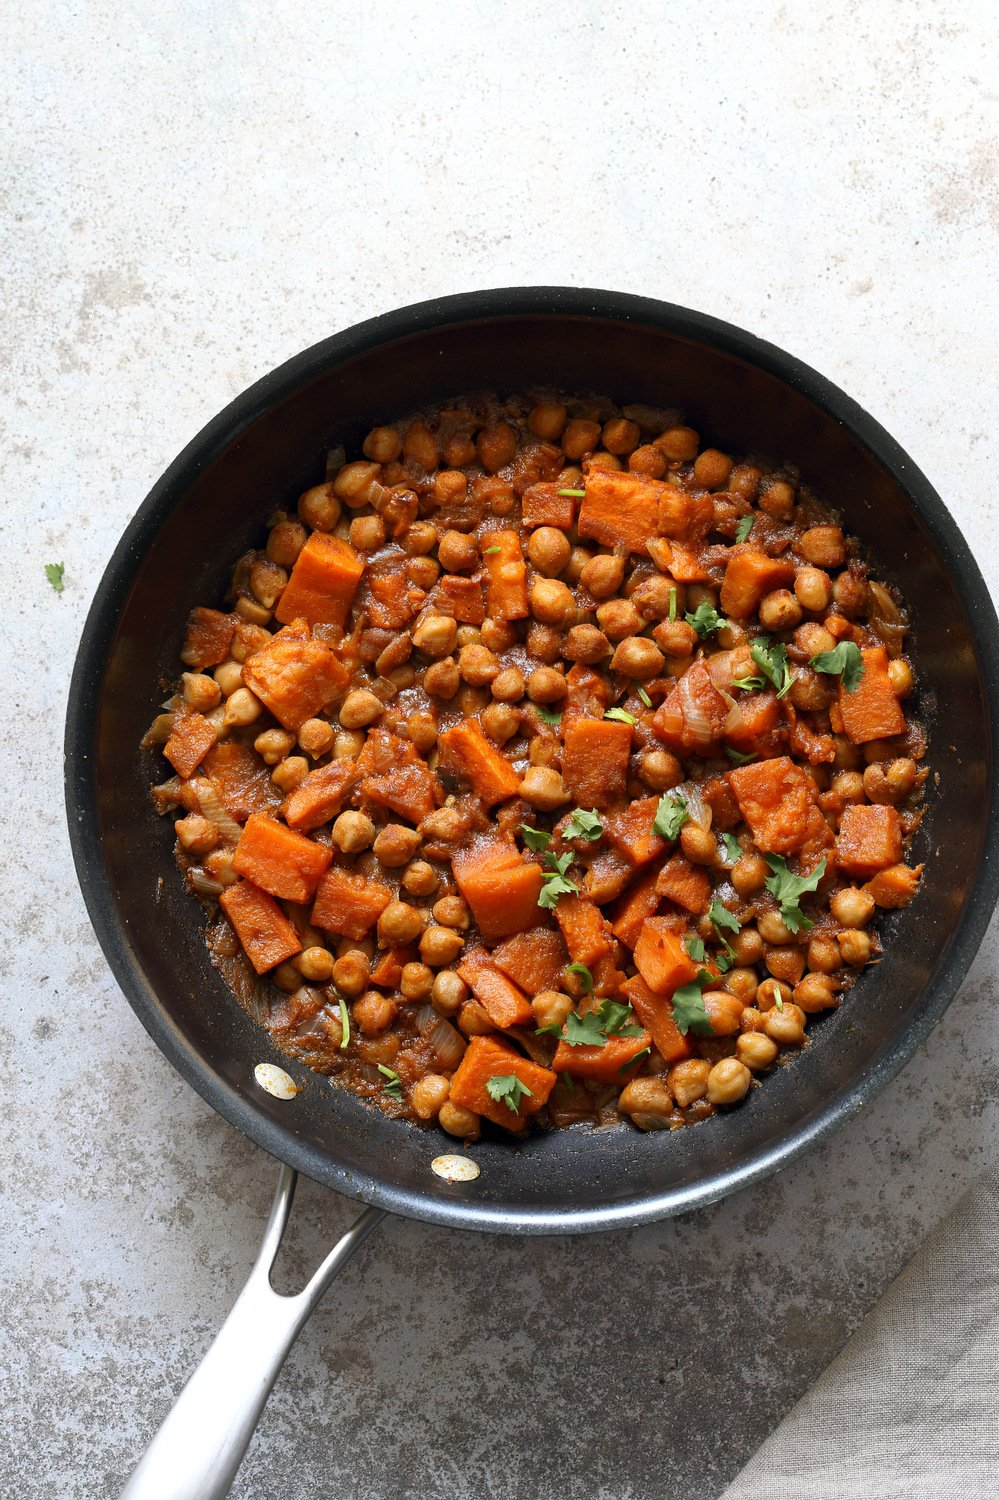 Our Harrisa Chickpea Stew in Black Skillet over Concrete